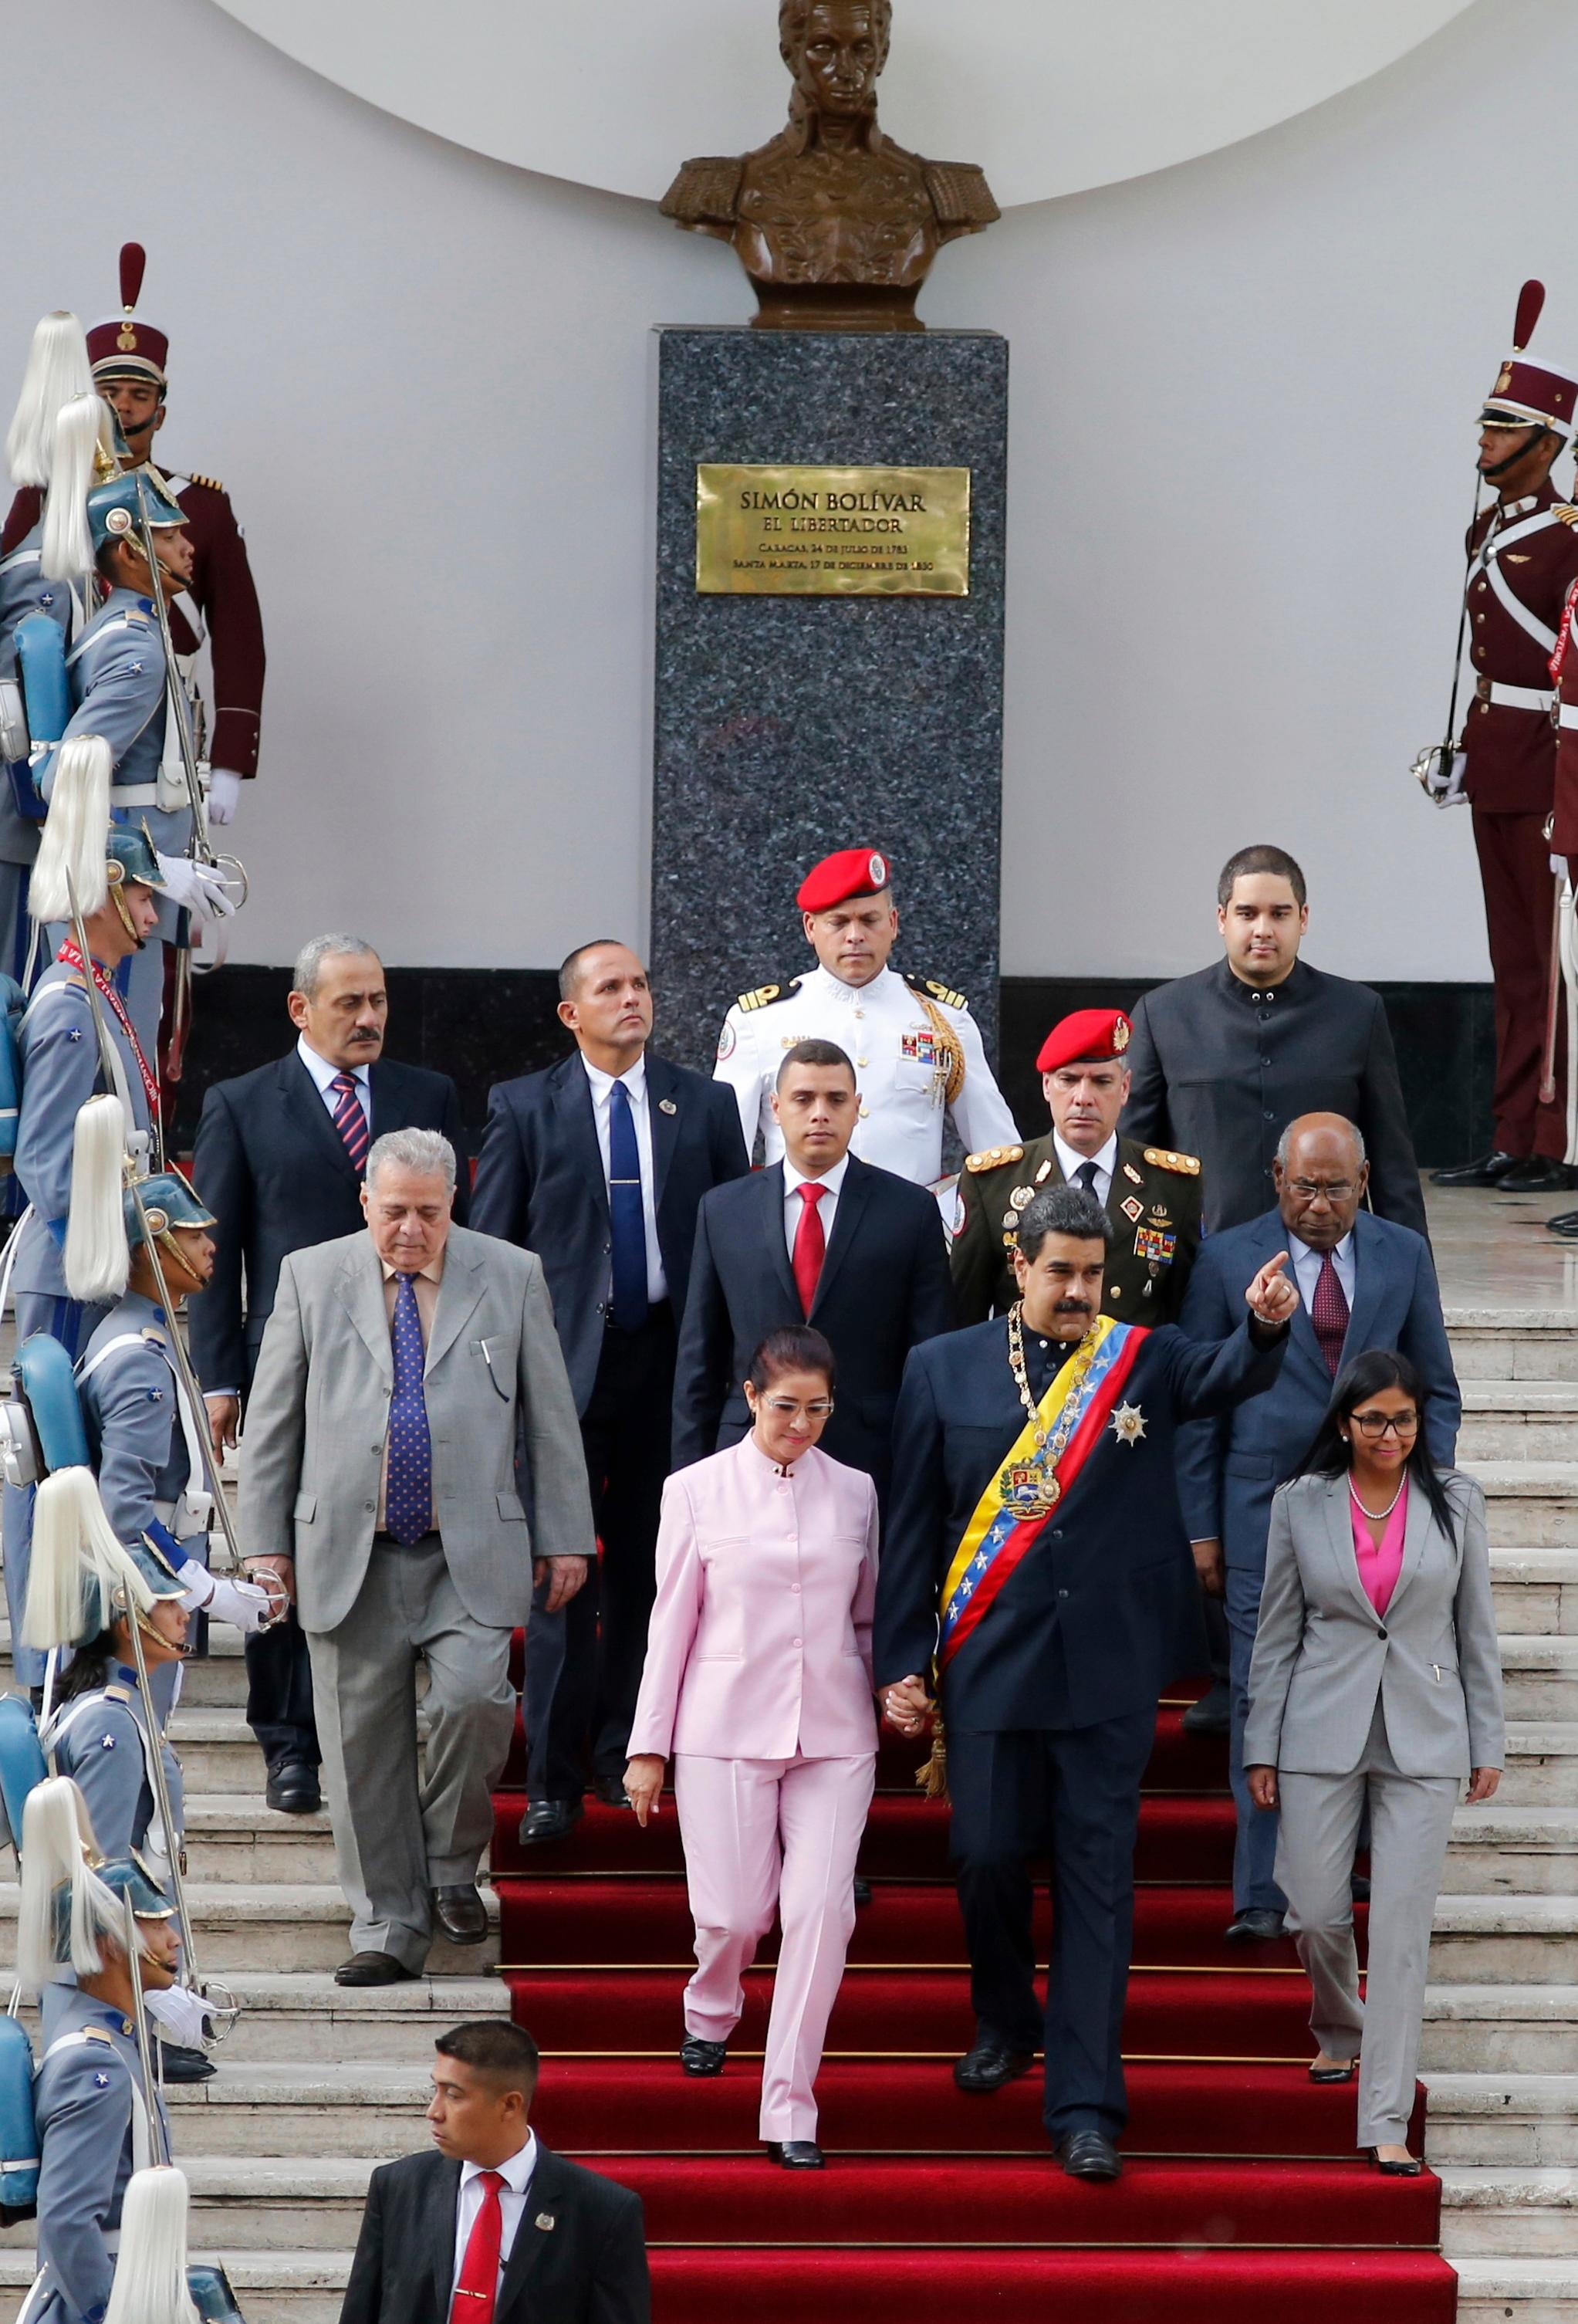 Venezuela's President Nicolas Maduro, center, flanked by his wife Cilia Flores, left, and Constitutional Assembly President Delay Rodriguez, arrive to the National Assembly building to attend a special session of the constitutional assembly in Caracas, Venezuela, Thursday, Aug. 10, 2017. The new constitutional assembly has declared itself as the superior body to all other governmental institutions, including the opposition-controlled congress. At top is a bust of the nation's independence hero Simon Bolivar. (AP Photo/Ariana Cubillos)